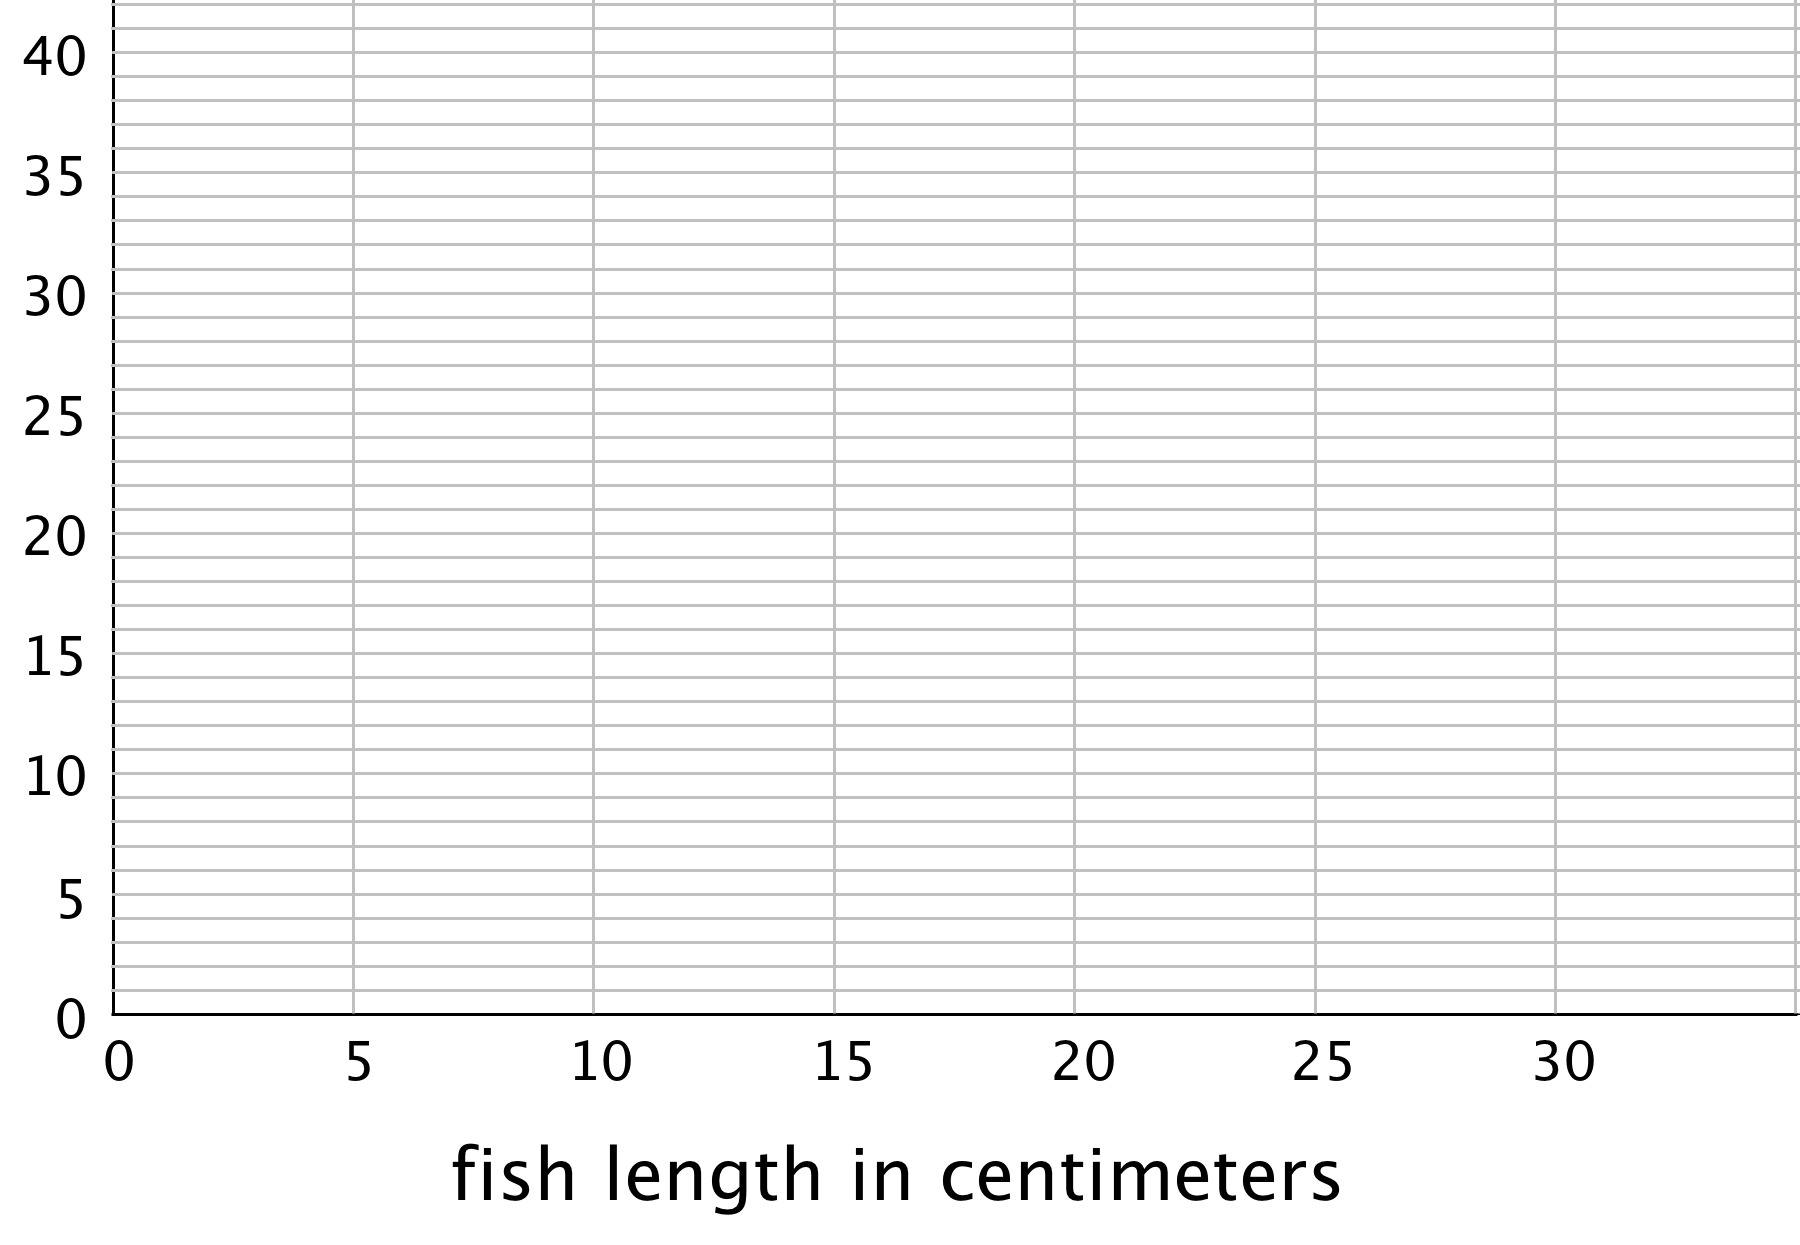 "A blank grid. The horizontal axis is labeled ""fish length in centimeters"" and the numbers 0 through 30, in increments of 5, are indicated. The vertical axis has the numbers 0 through 40, in increments of 5, indicated. There are 4 evenly spaced horizontal gridlines between each indicated number."